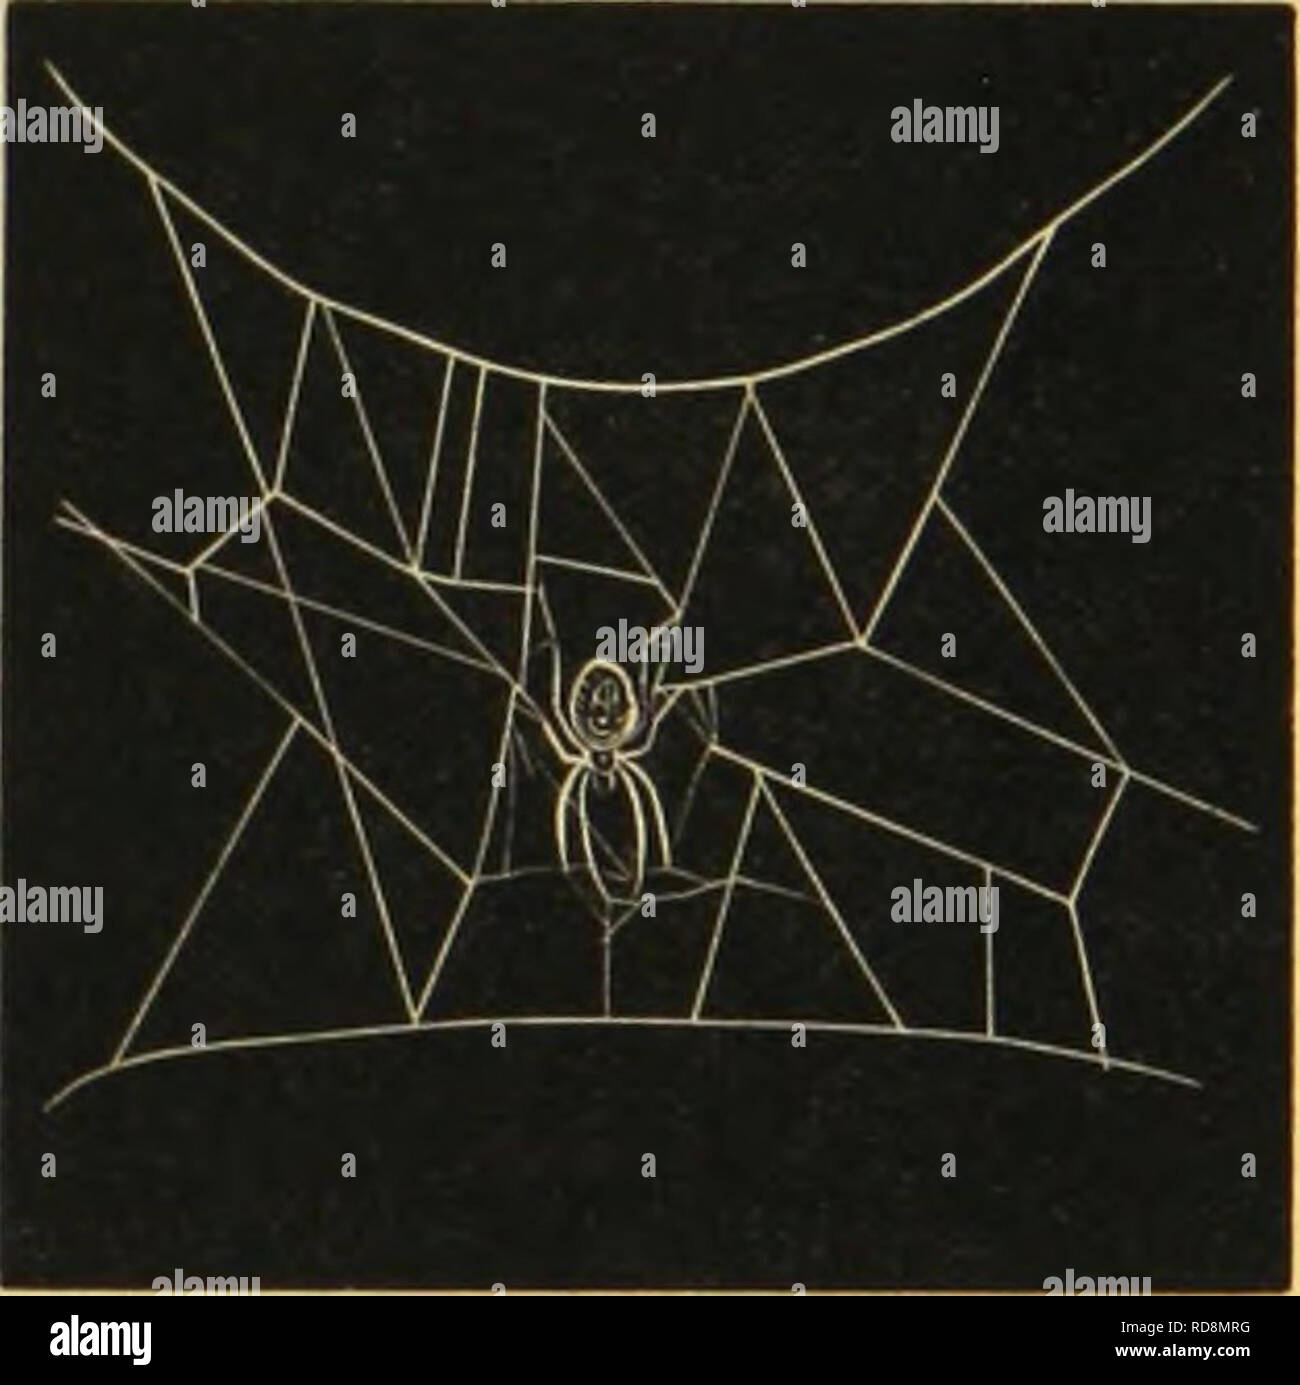 . American spiders and their spinning work. A natural history of the orbweaving spiders of the United States, with special regard to their industry and habits. Spiders. CHAPTER XIV. MECHANICAL STRENGTH OF WEBS AND PHYSICAL POWER OF SPIDERS. I. The size of orbwebs varies generally with the size of the builders. But location, the condition of the wind, and contiguity of other webs have much to do in determining the matter. The abundance of insect food may be a factor modifying both form and size. An example of this was seen in the colony of Epeiroids referred to, Cliapter III., as stretching the - Stock Image